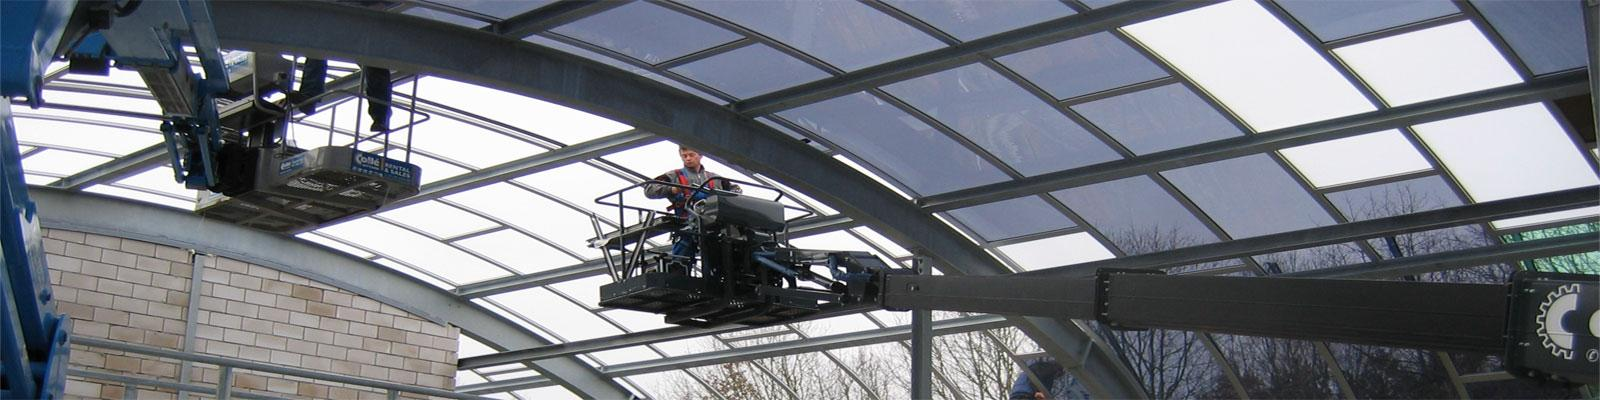 polycarbonate-rooflight8